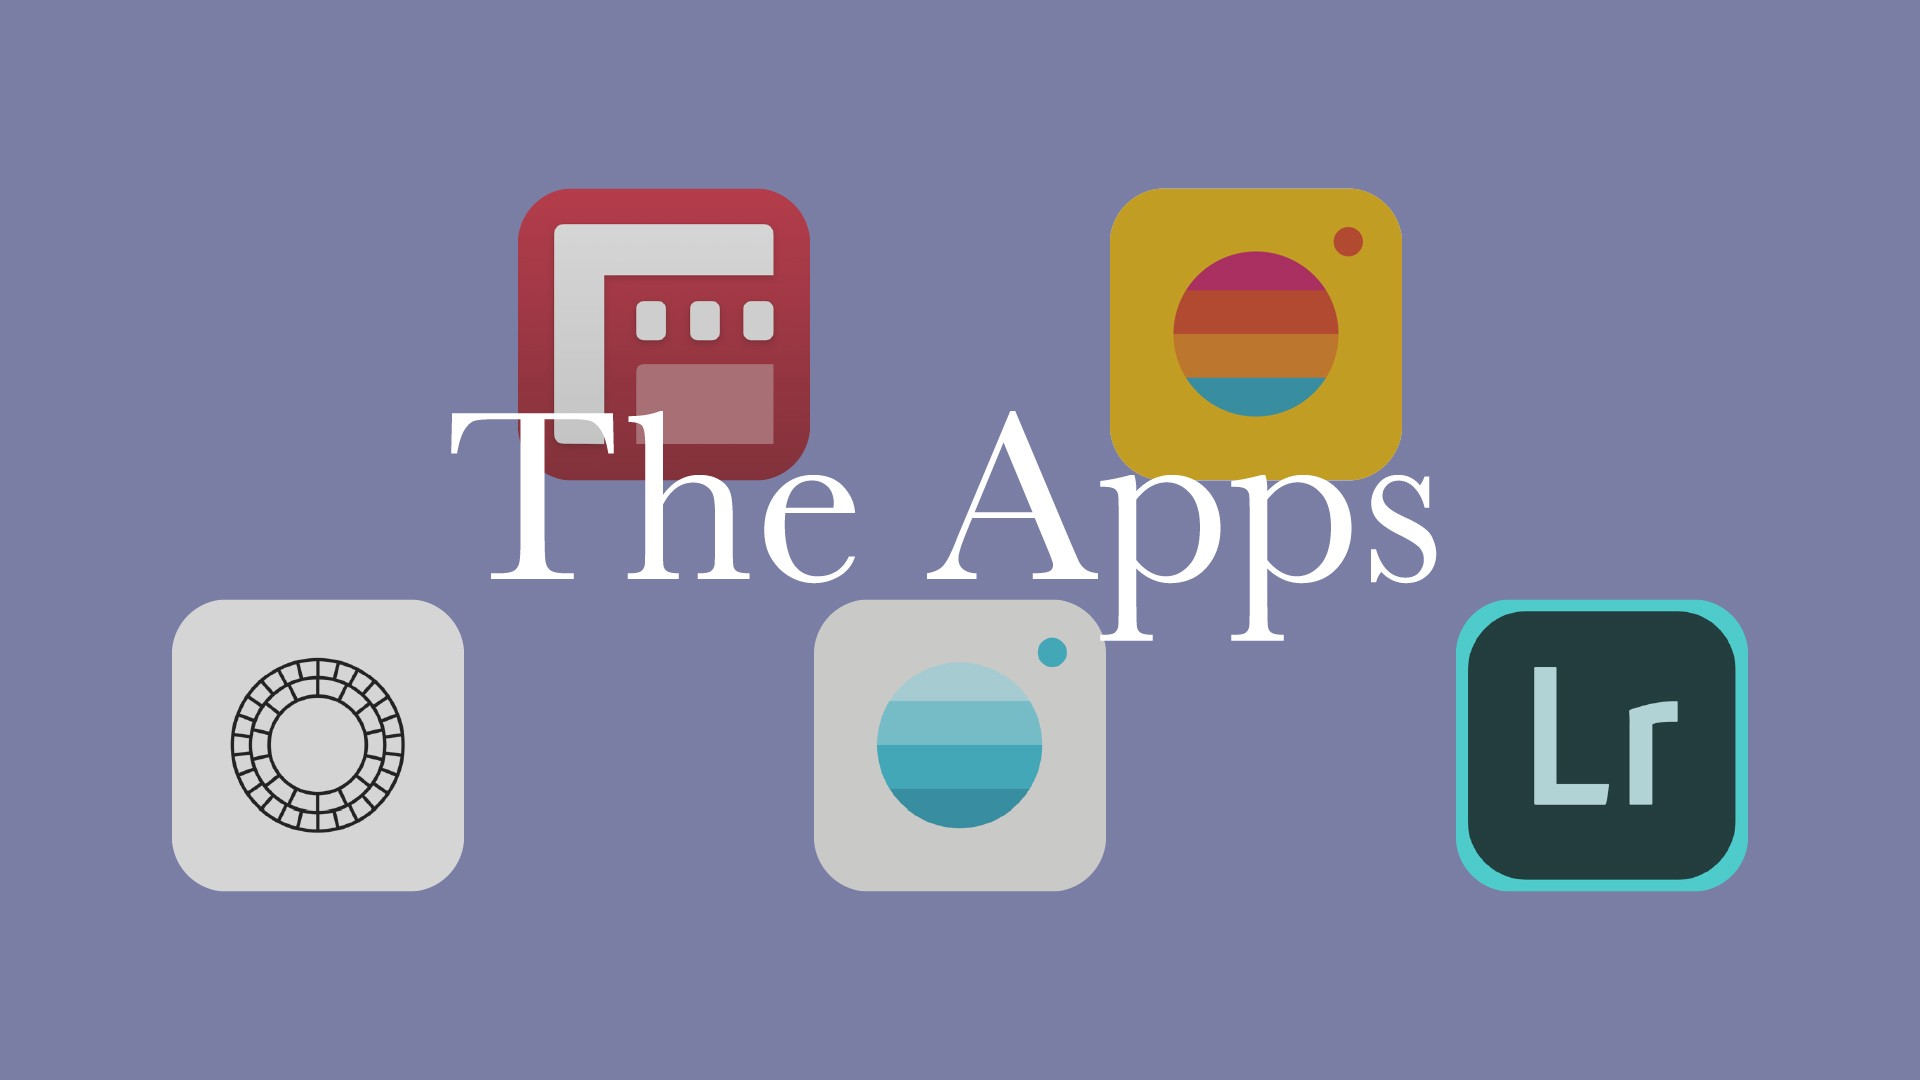 app icons for Filmic Pro, Rtro, VSCO, Moment Pro Camera, and Lightroom Mobile